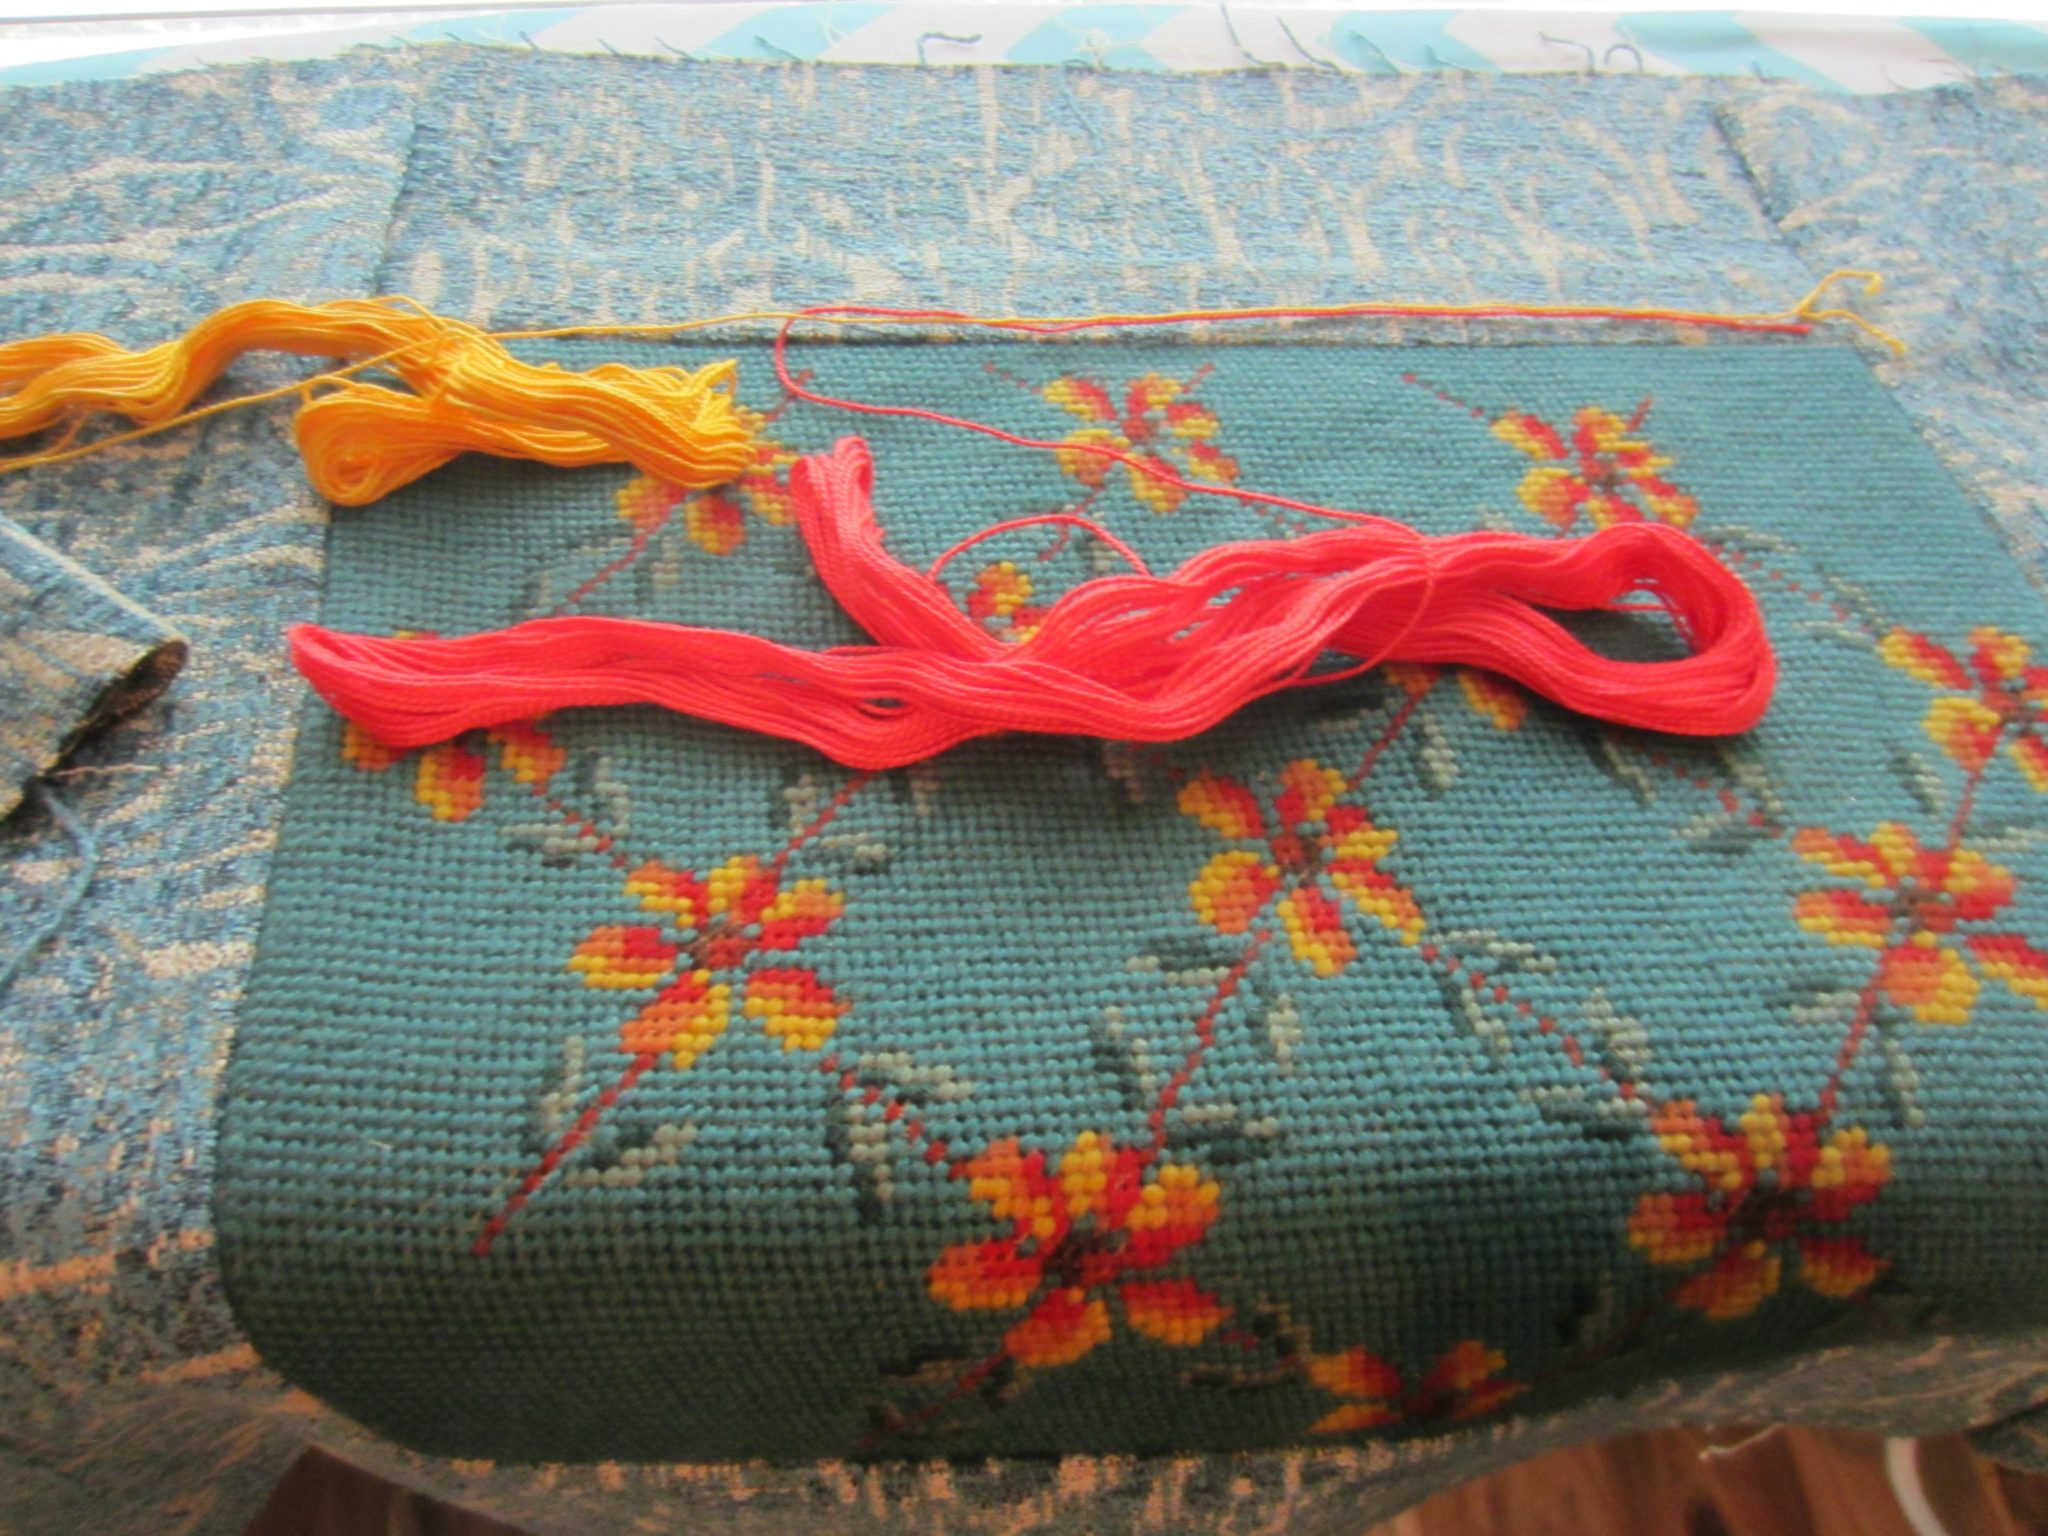 Adding embroidery embellishments to the pillow top